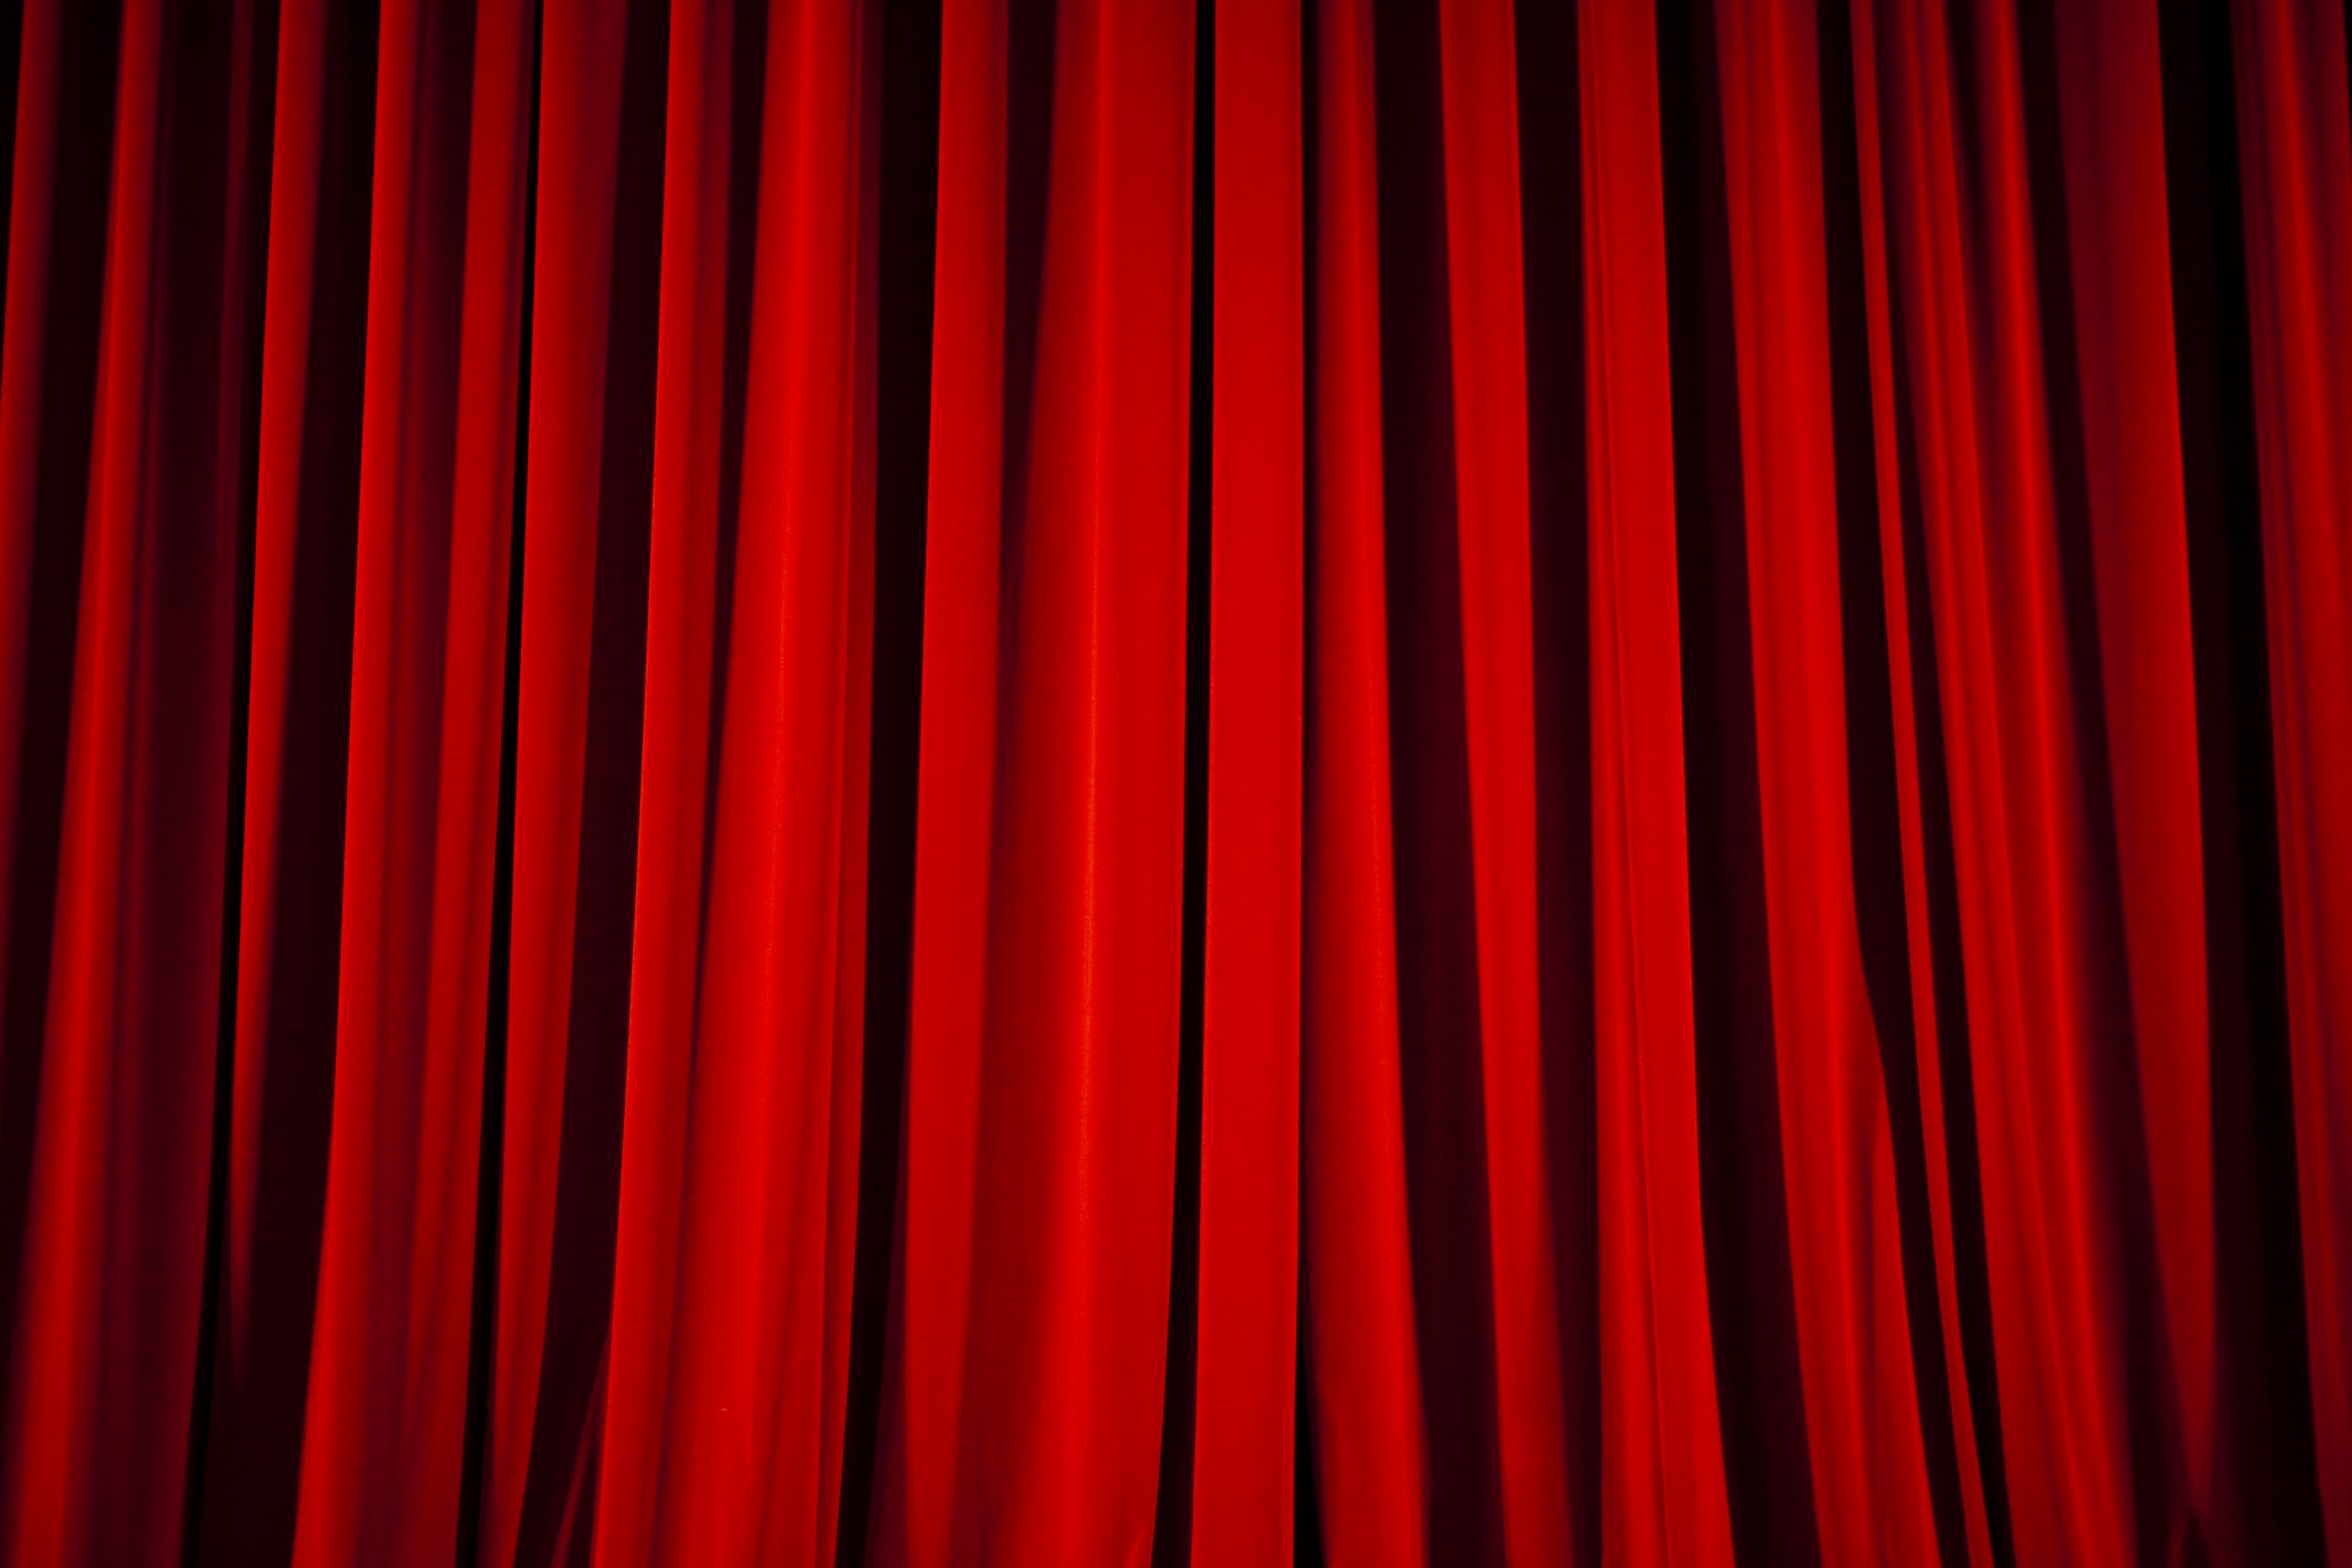 Theatre Curtain | East Reservations